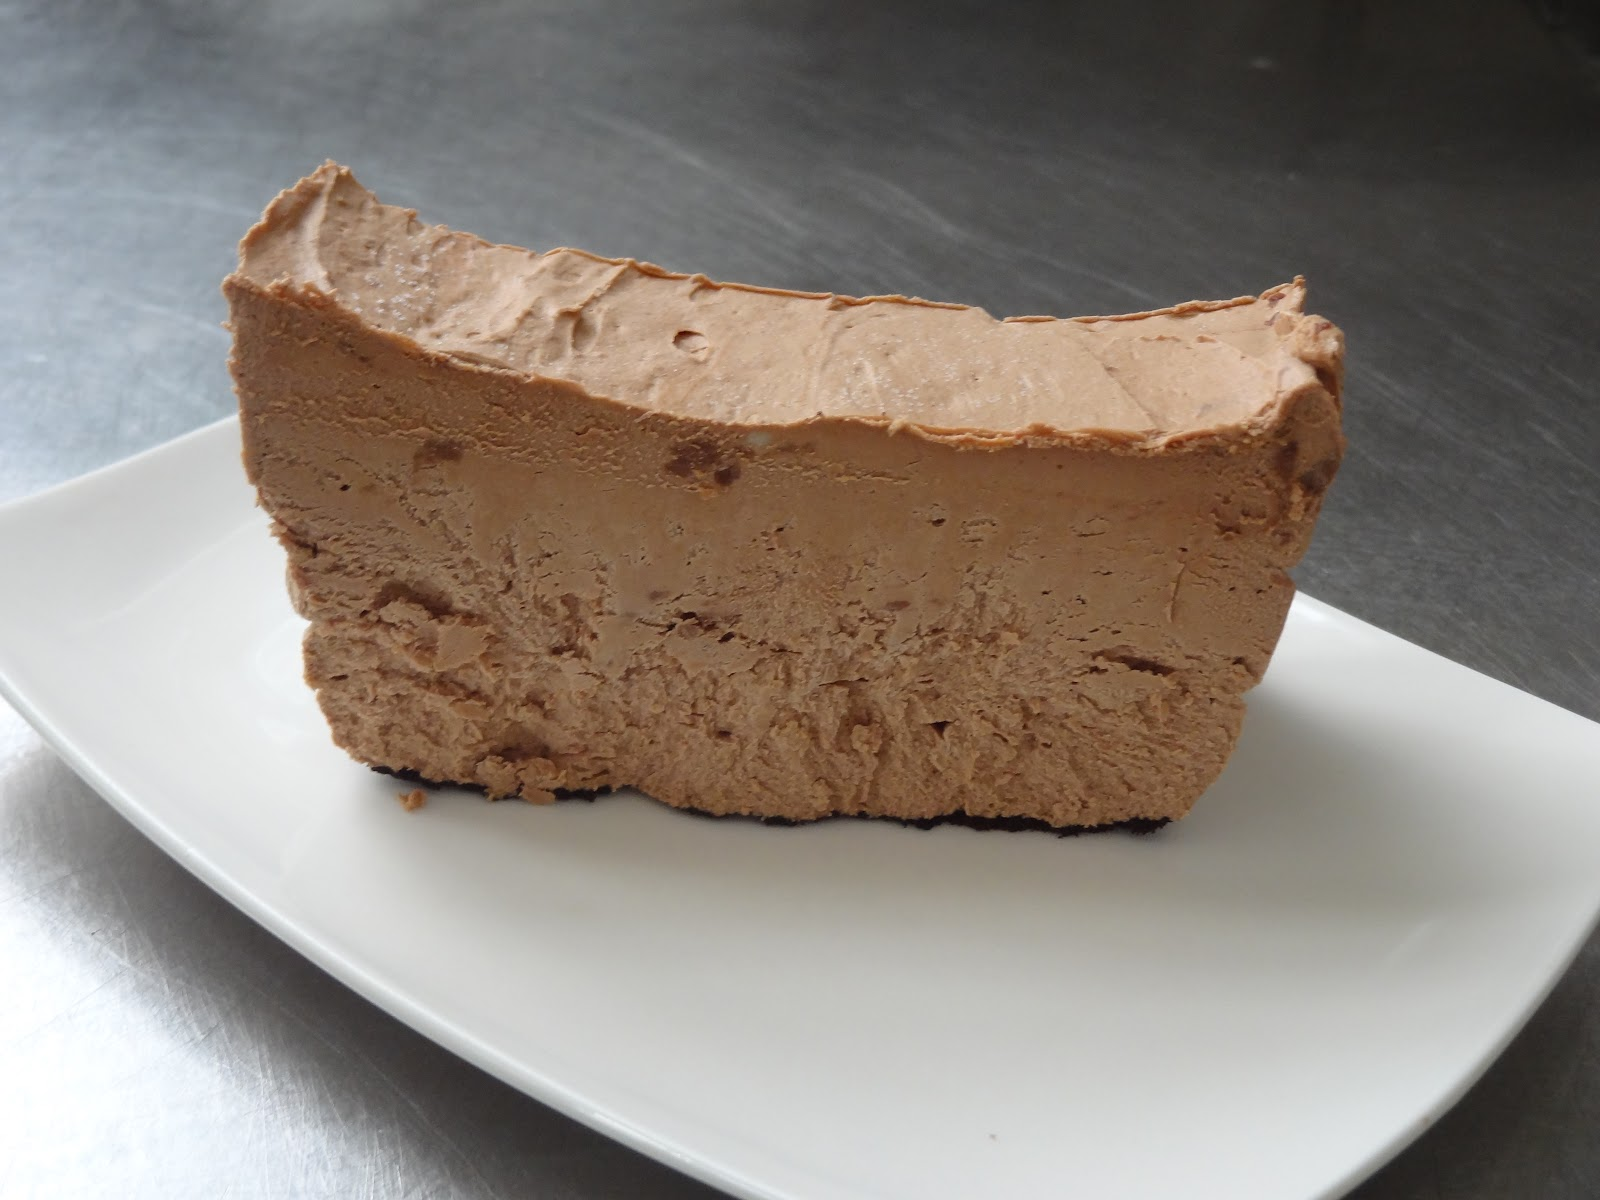 Power home solutions chocolate peanut butter dessert for Desserts you can make with peanut butter